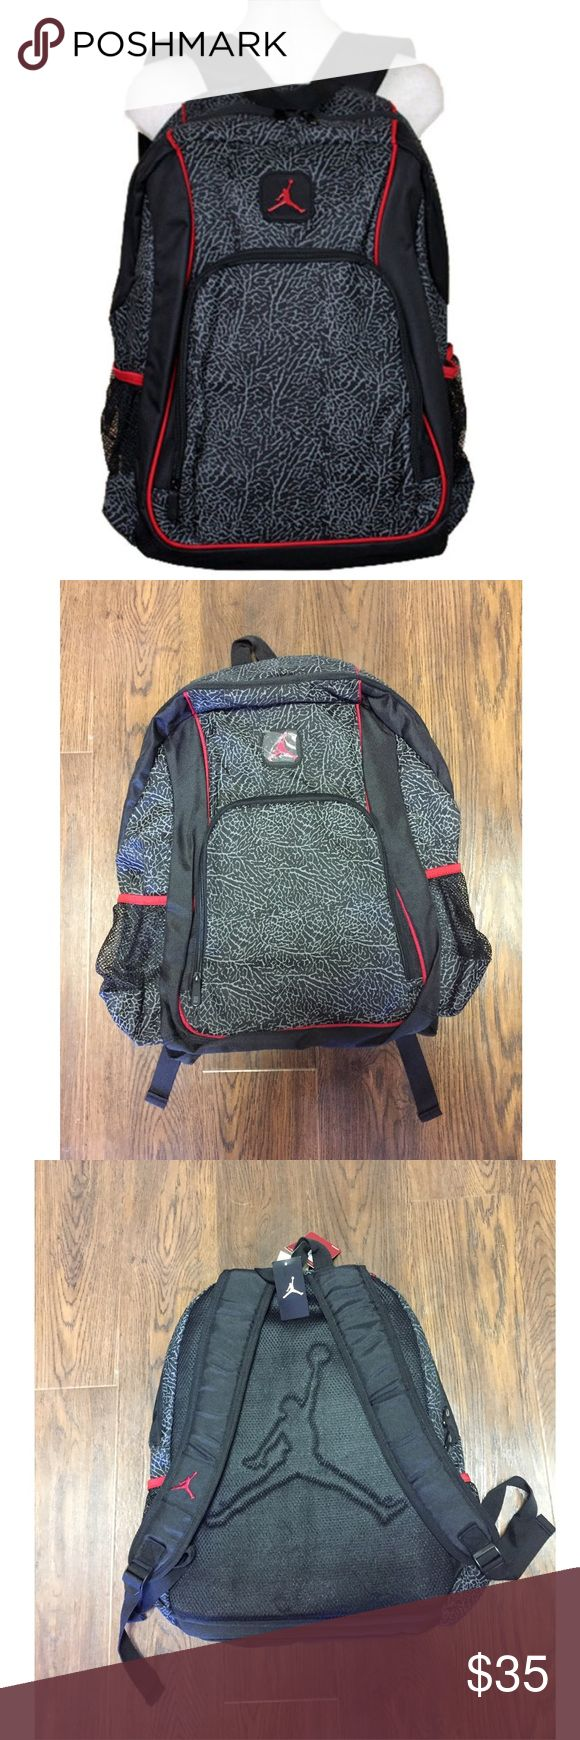 """Air Jordan Elephant/Cement Print Backpack/Laptop Brand : Nike Air Jordan Brand  Color : Black/Red  Measurements : 18"""" H x 14"""" W  Material : 100% Polyester  100% AUTHENTIC Elephant/Cement Print throughout the bag  Two side Mesh pockets for drinks  Padded adjustable straps  Large main zippered compartment for the laptop  Additional front zippered media compartment  Large Jumpman logo on the back of the bag  BRAND NEW WITH TAGS Nike Other"""